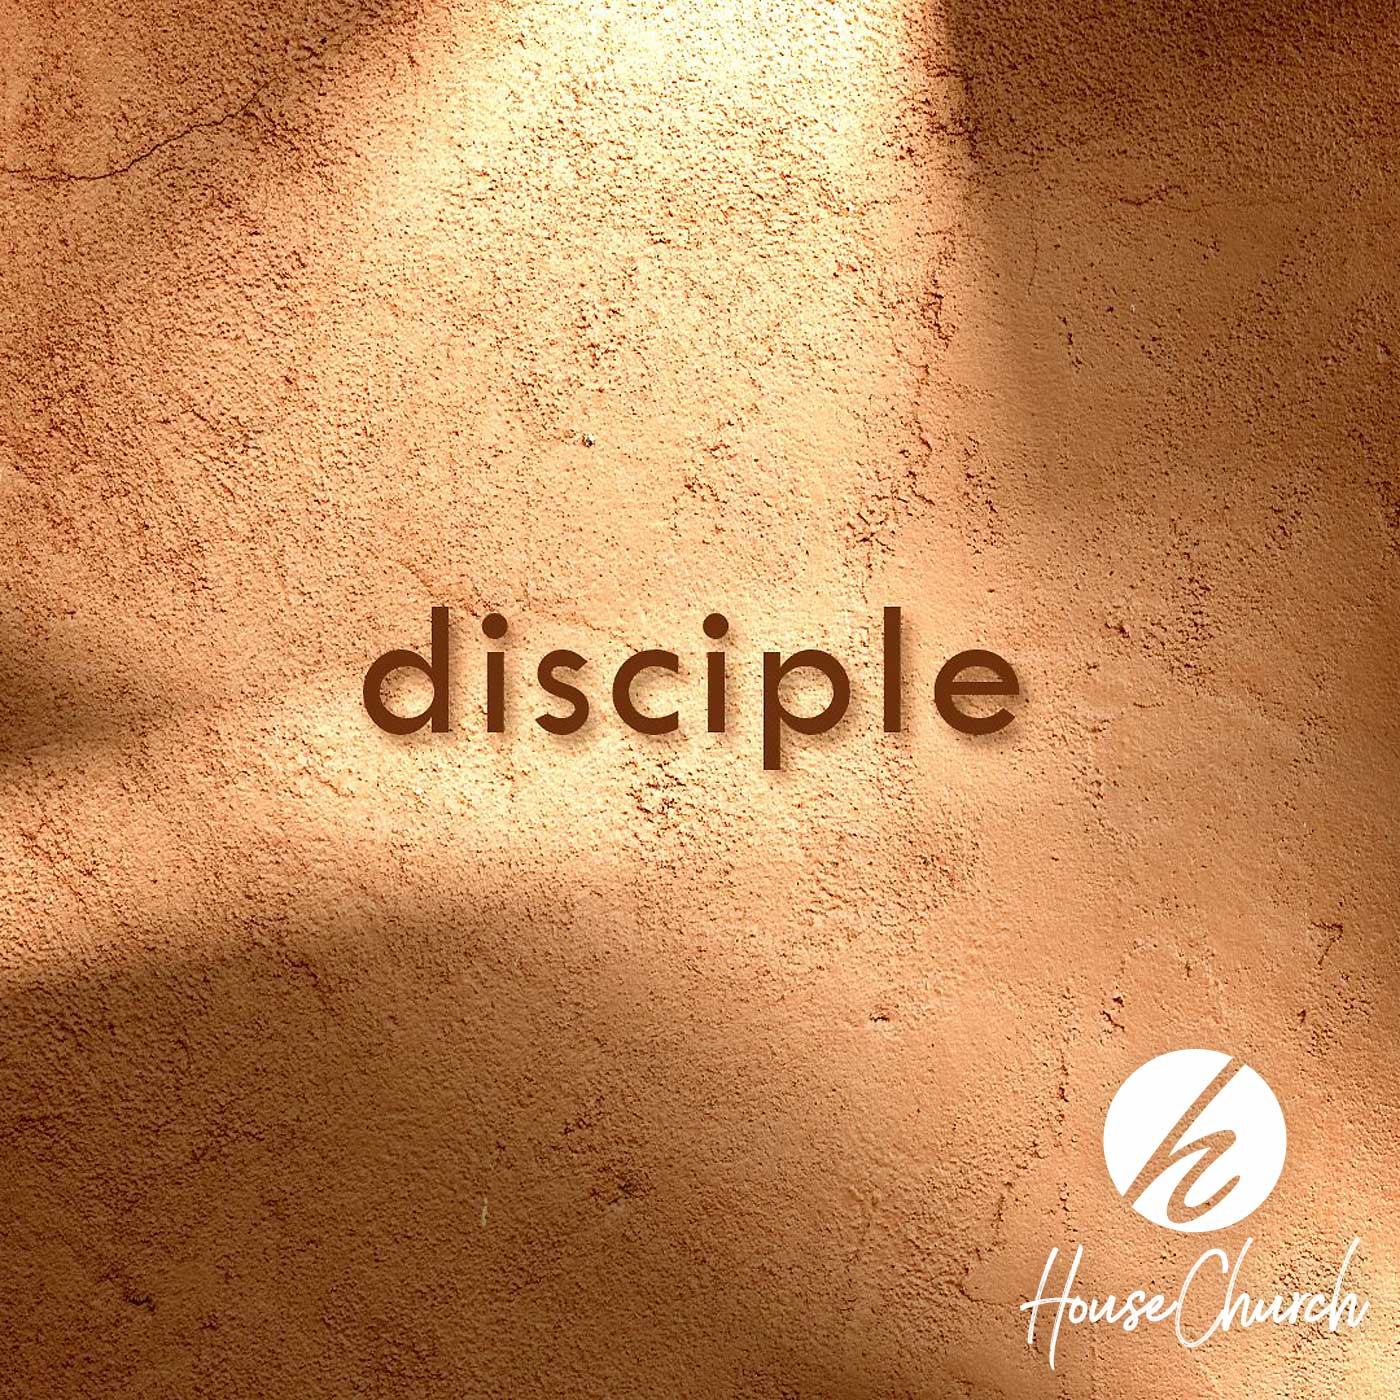 Disciple – Part 5